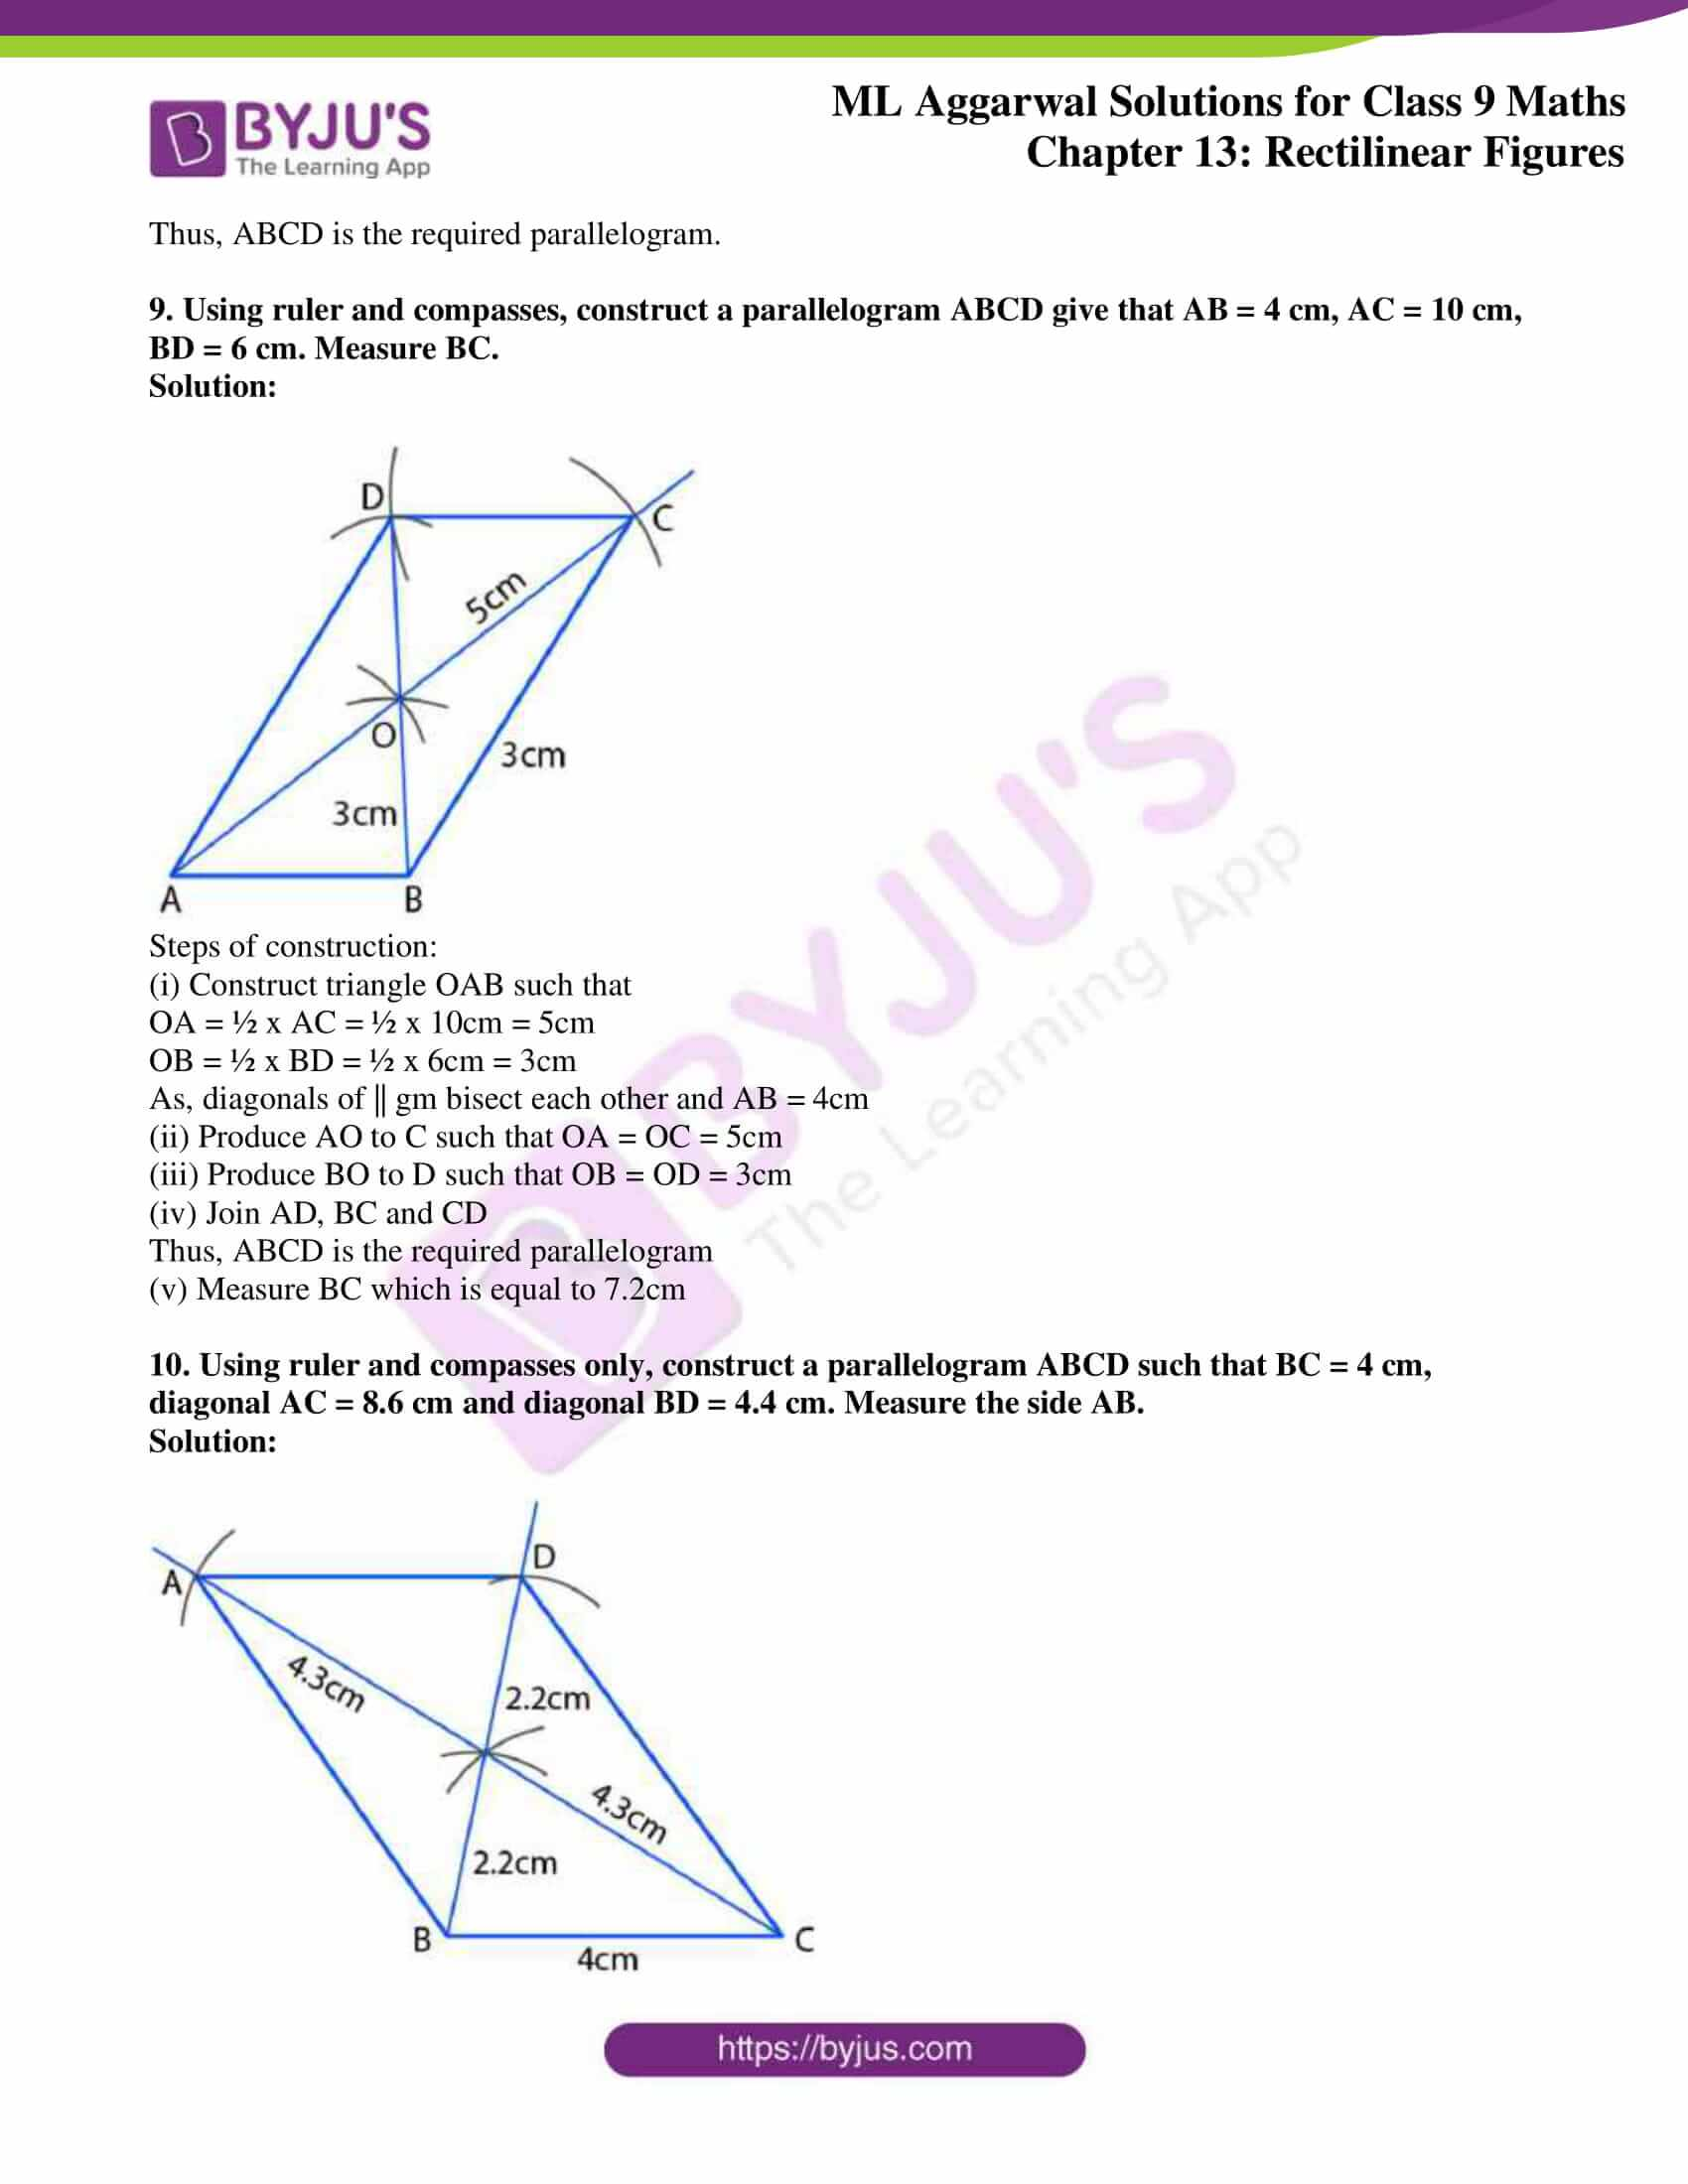 ml aggarwal solutions for class 9 maths chapter 13 29